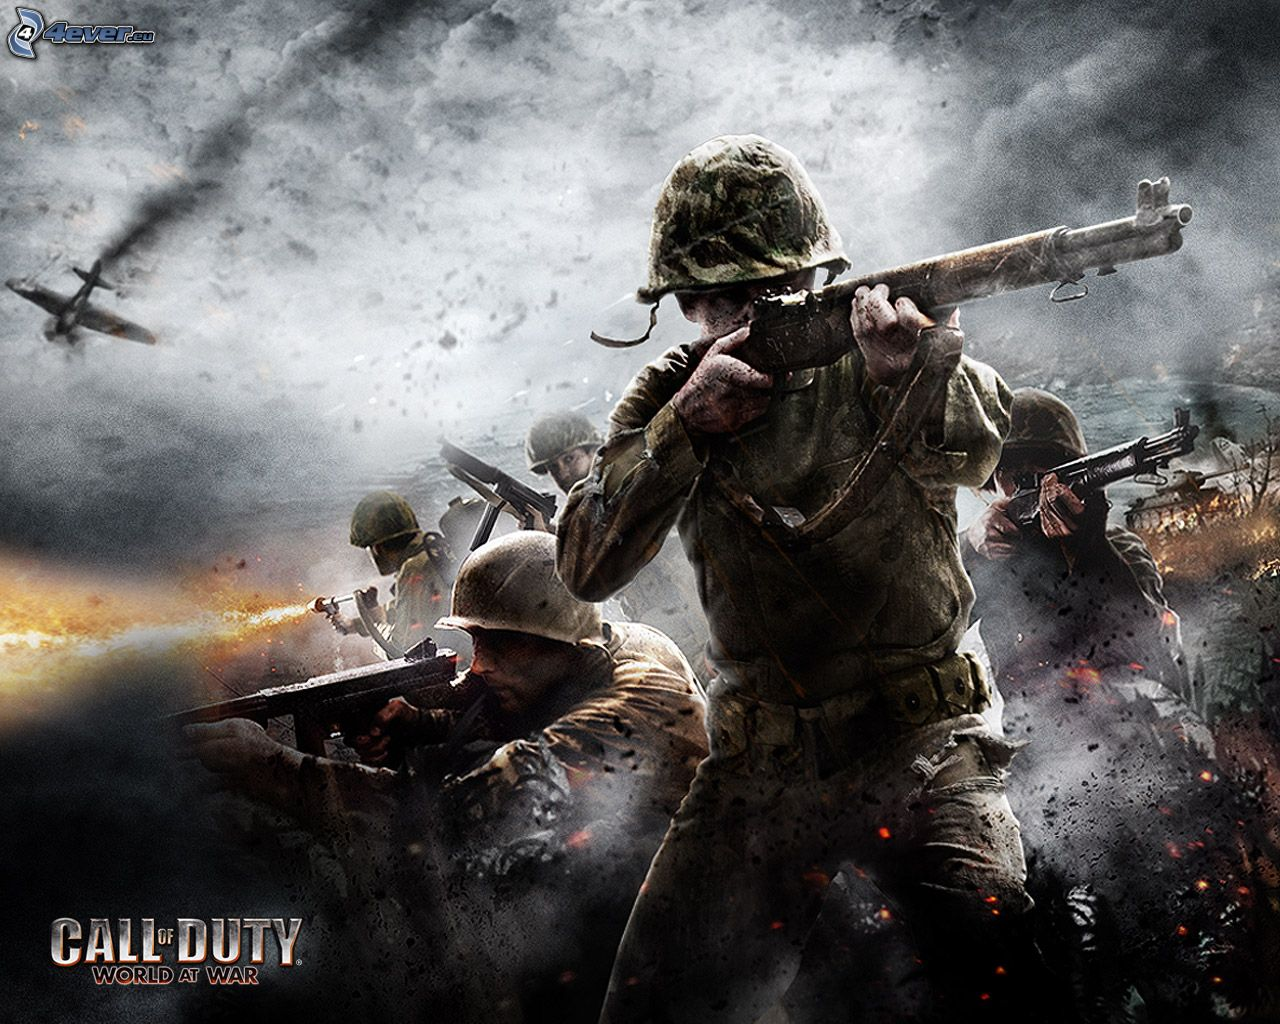 call-of-duty-world-at-war,-soldiers-190677.jpg